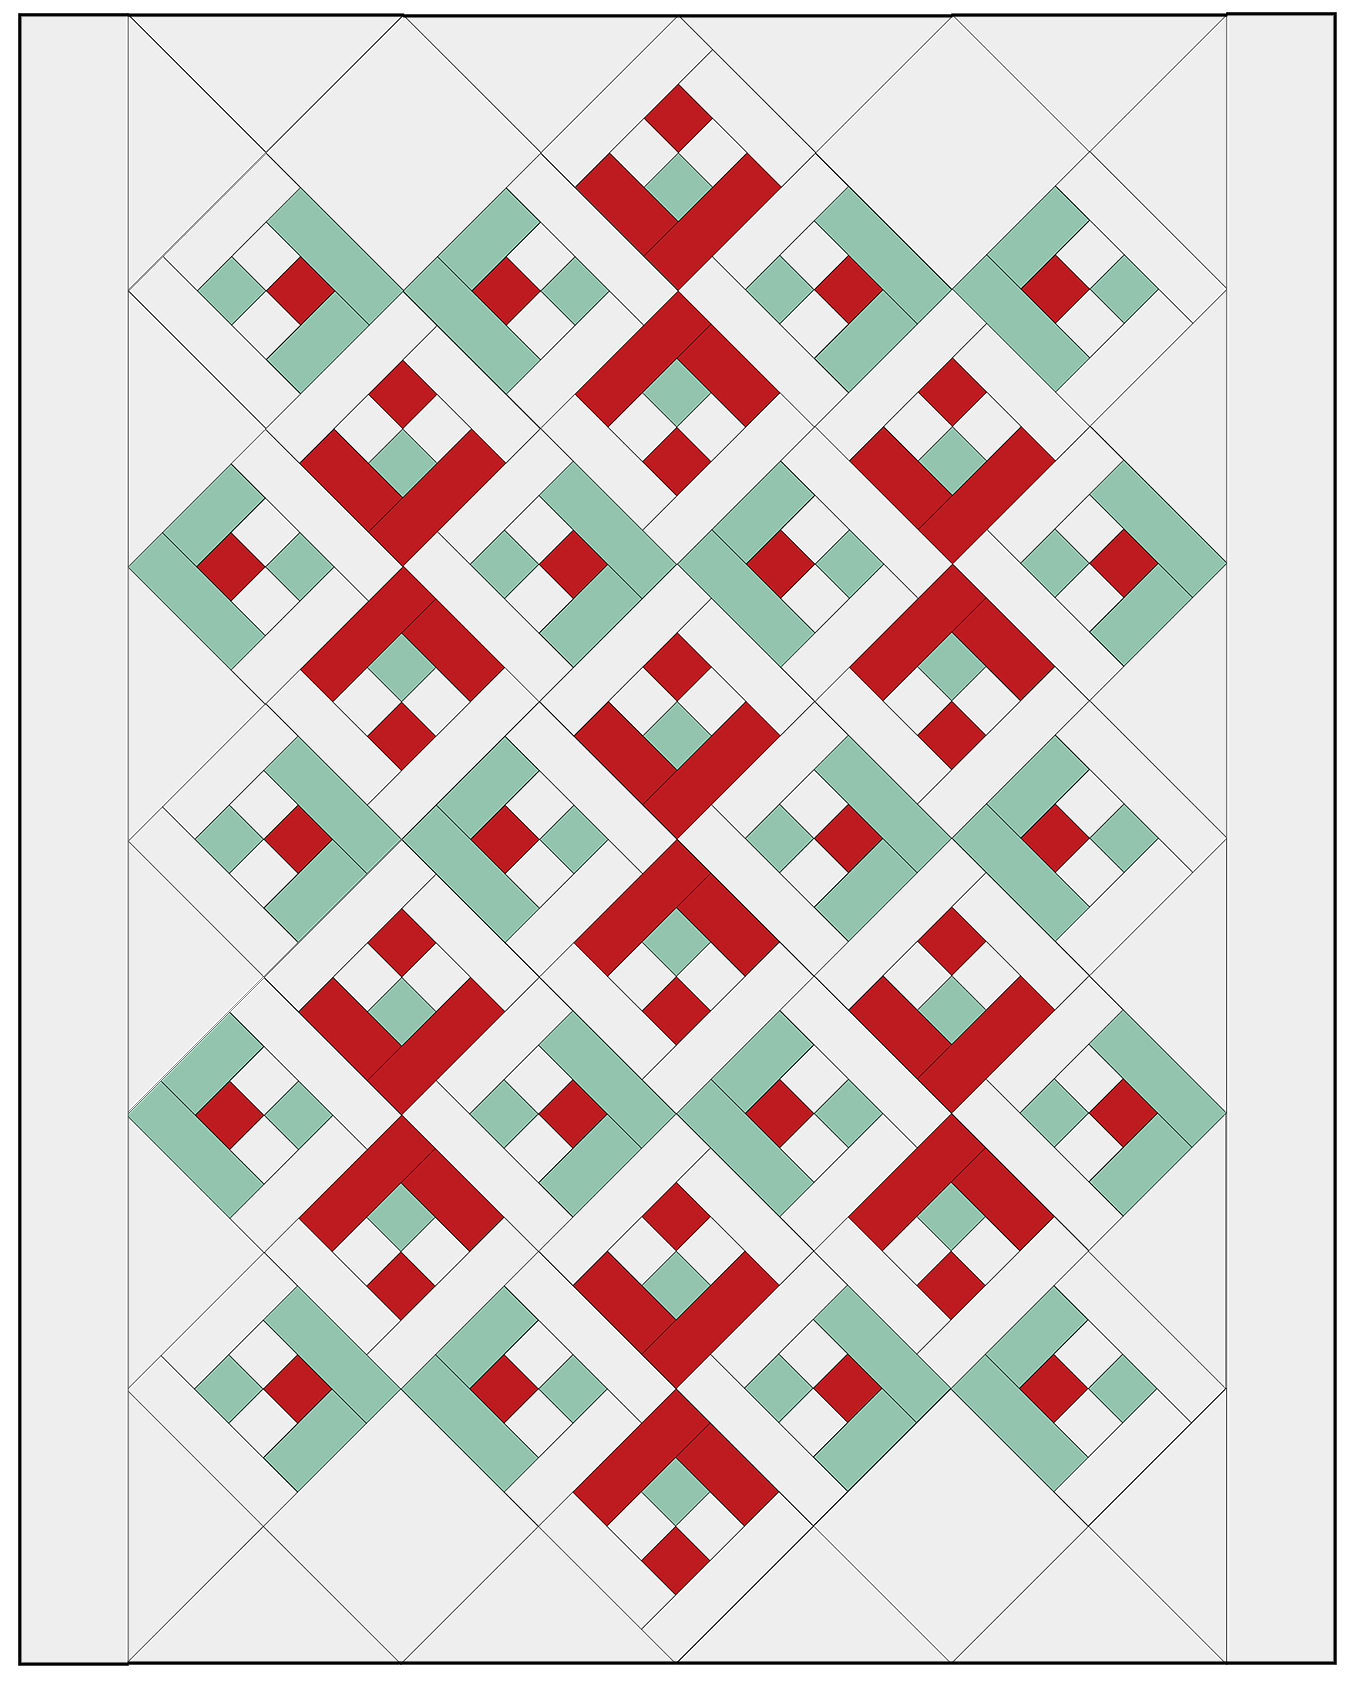 Snowflake Quilt Assembly Diagram Step 4